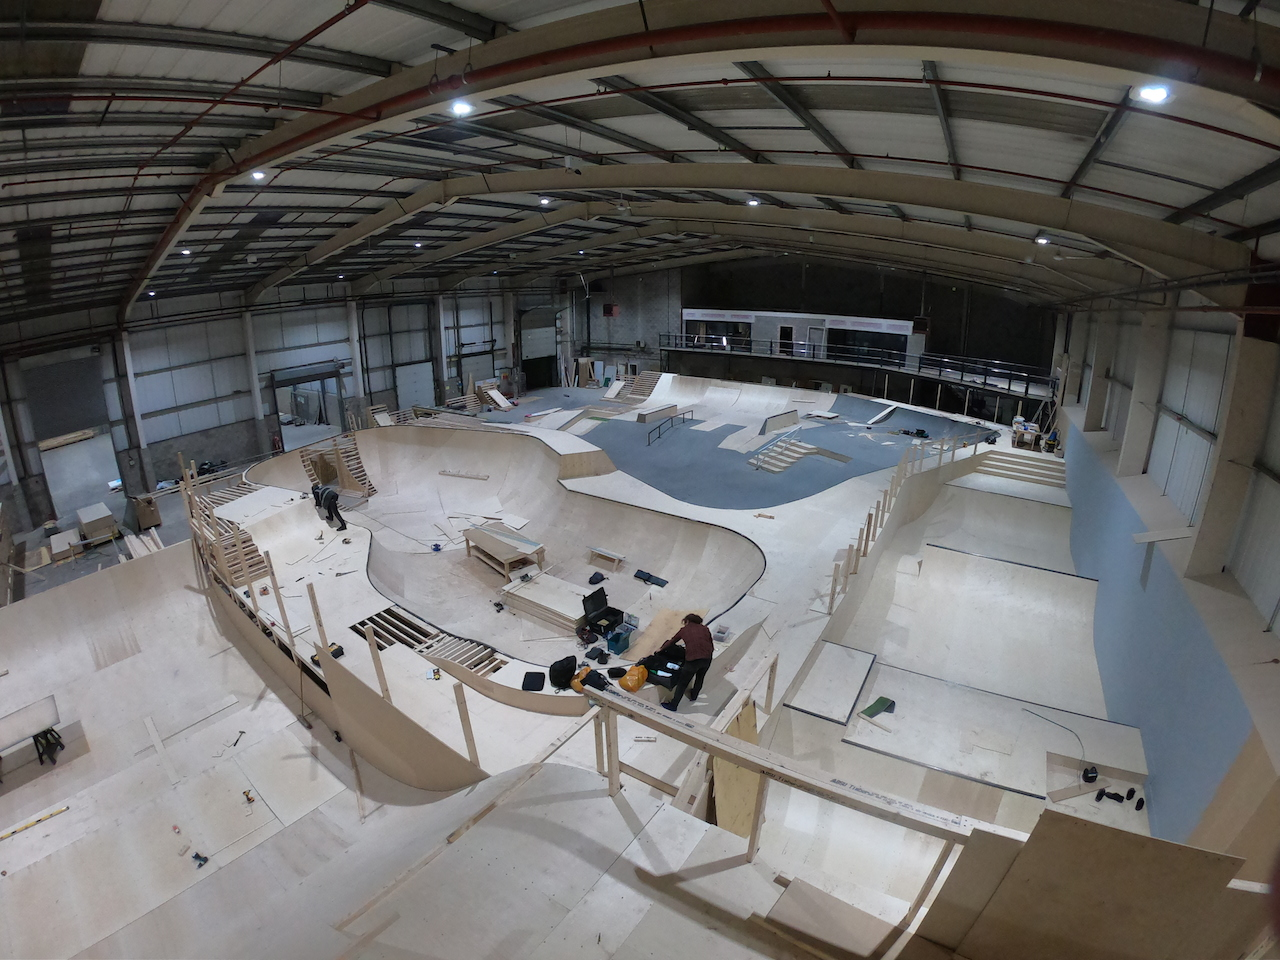 Graystone Manchester site under construction. Shot taken from atop the drop in for big air to foam pit. Photo Dave Thompson.